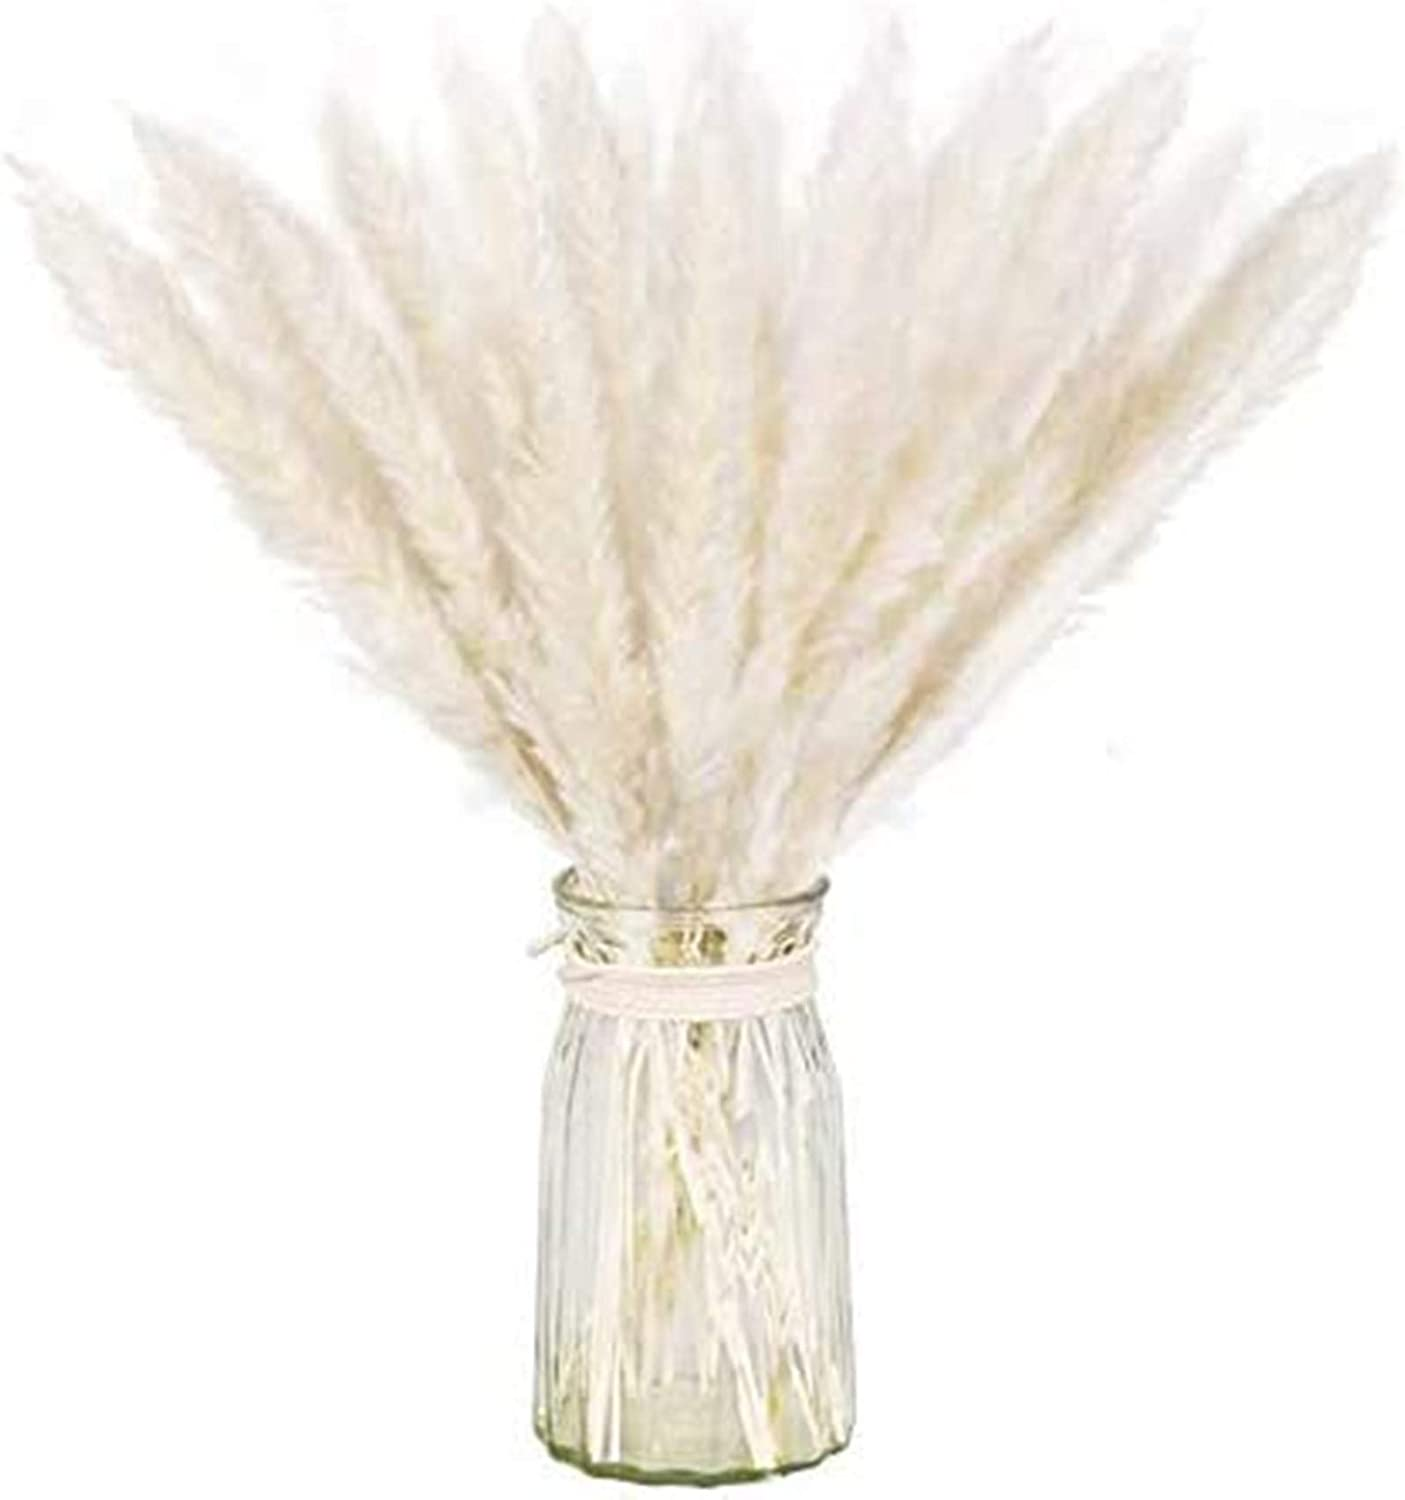 Dry Pampas Grass Natural Dried Bundle for Home Decor 20pcs(White)